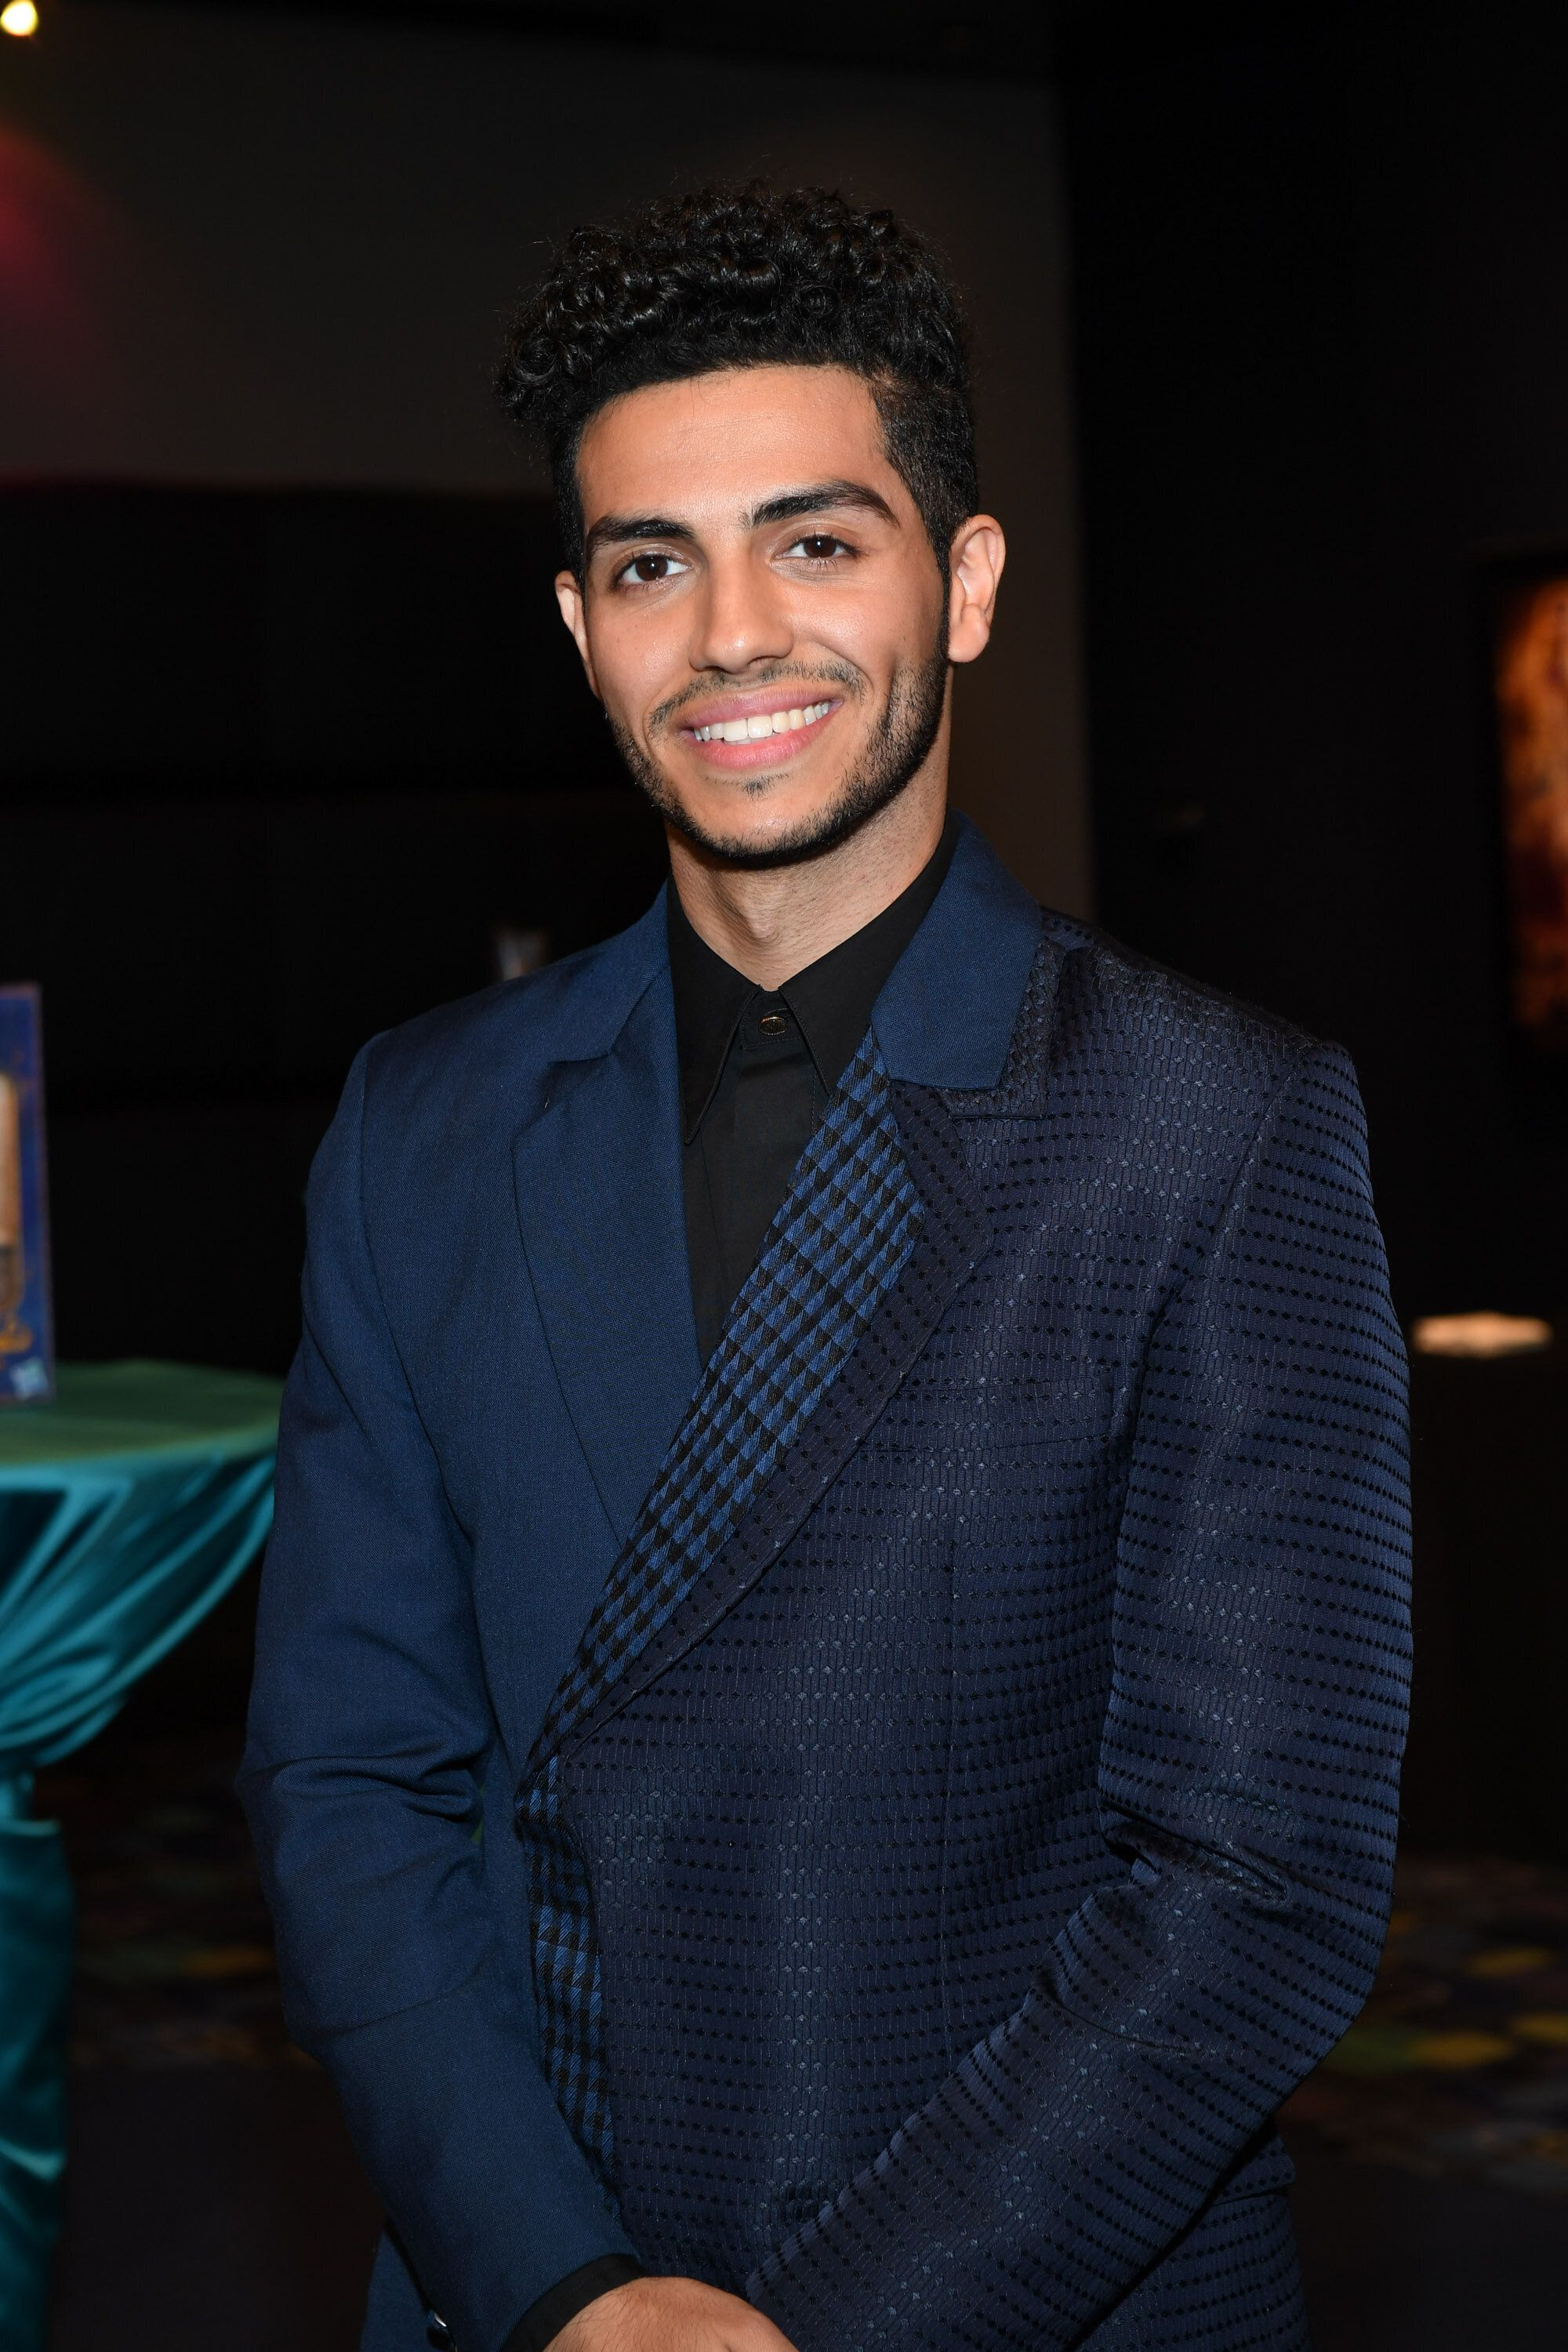 'Aladdin' Star's Wish: A Whole New World Of Diversity In